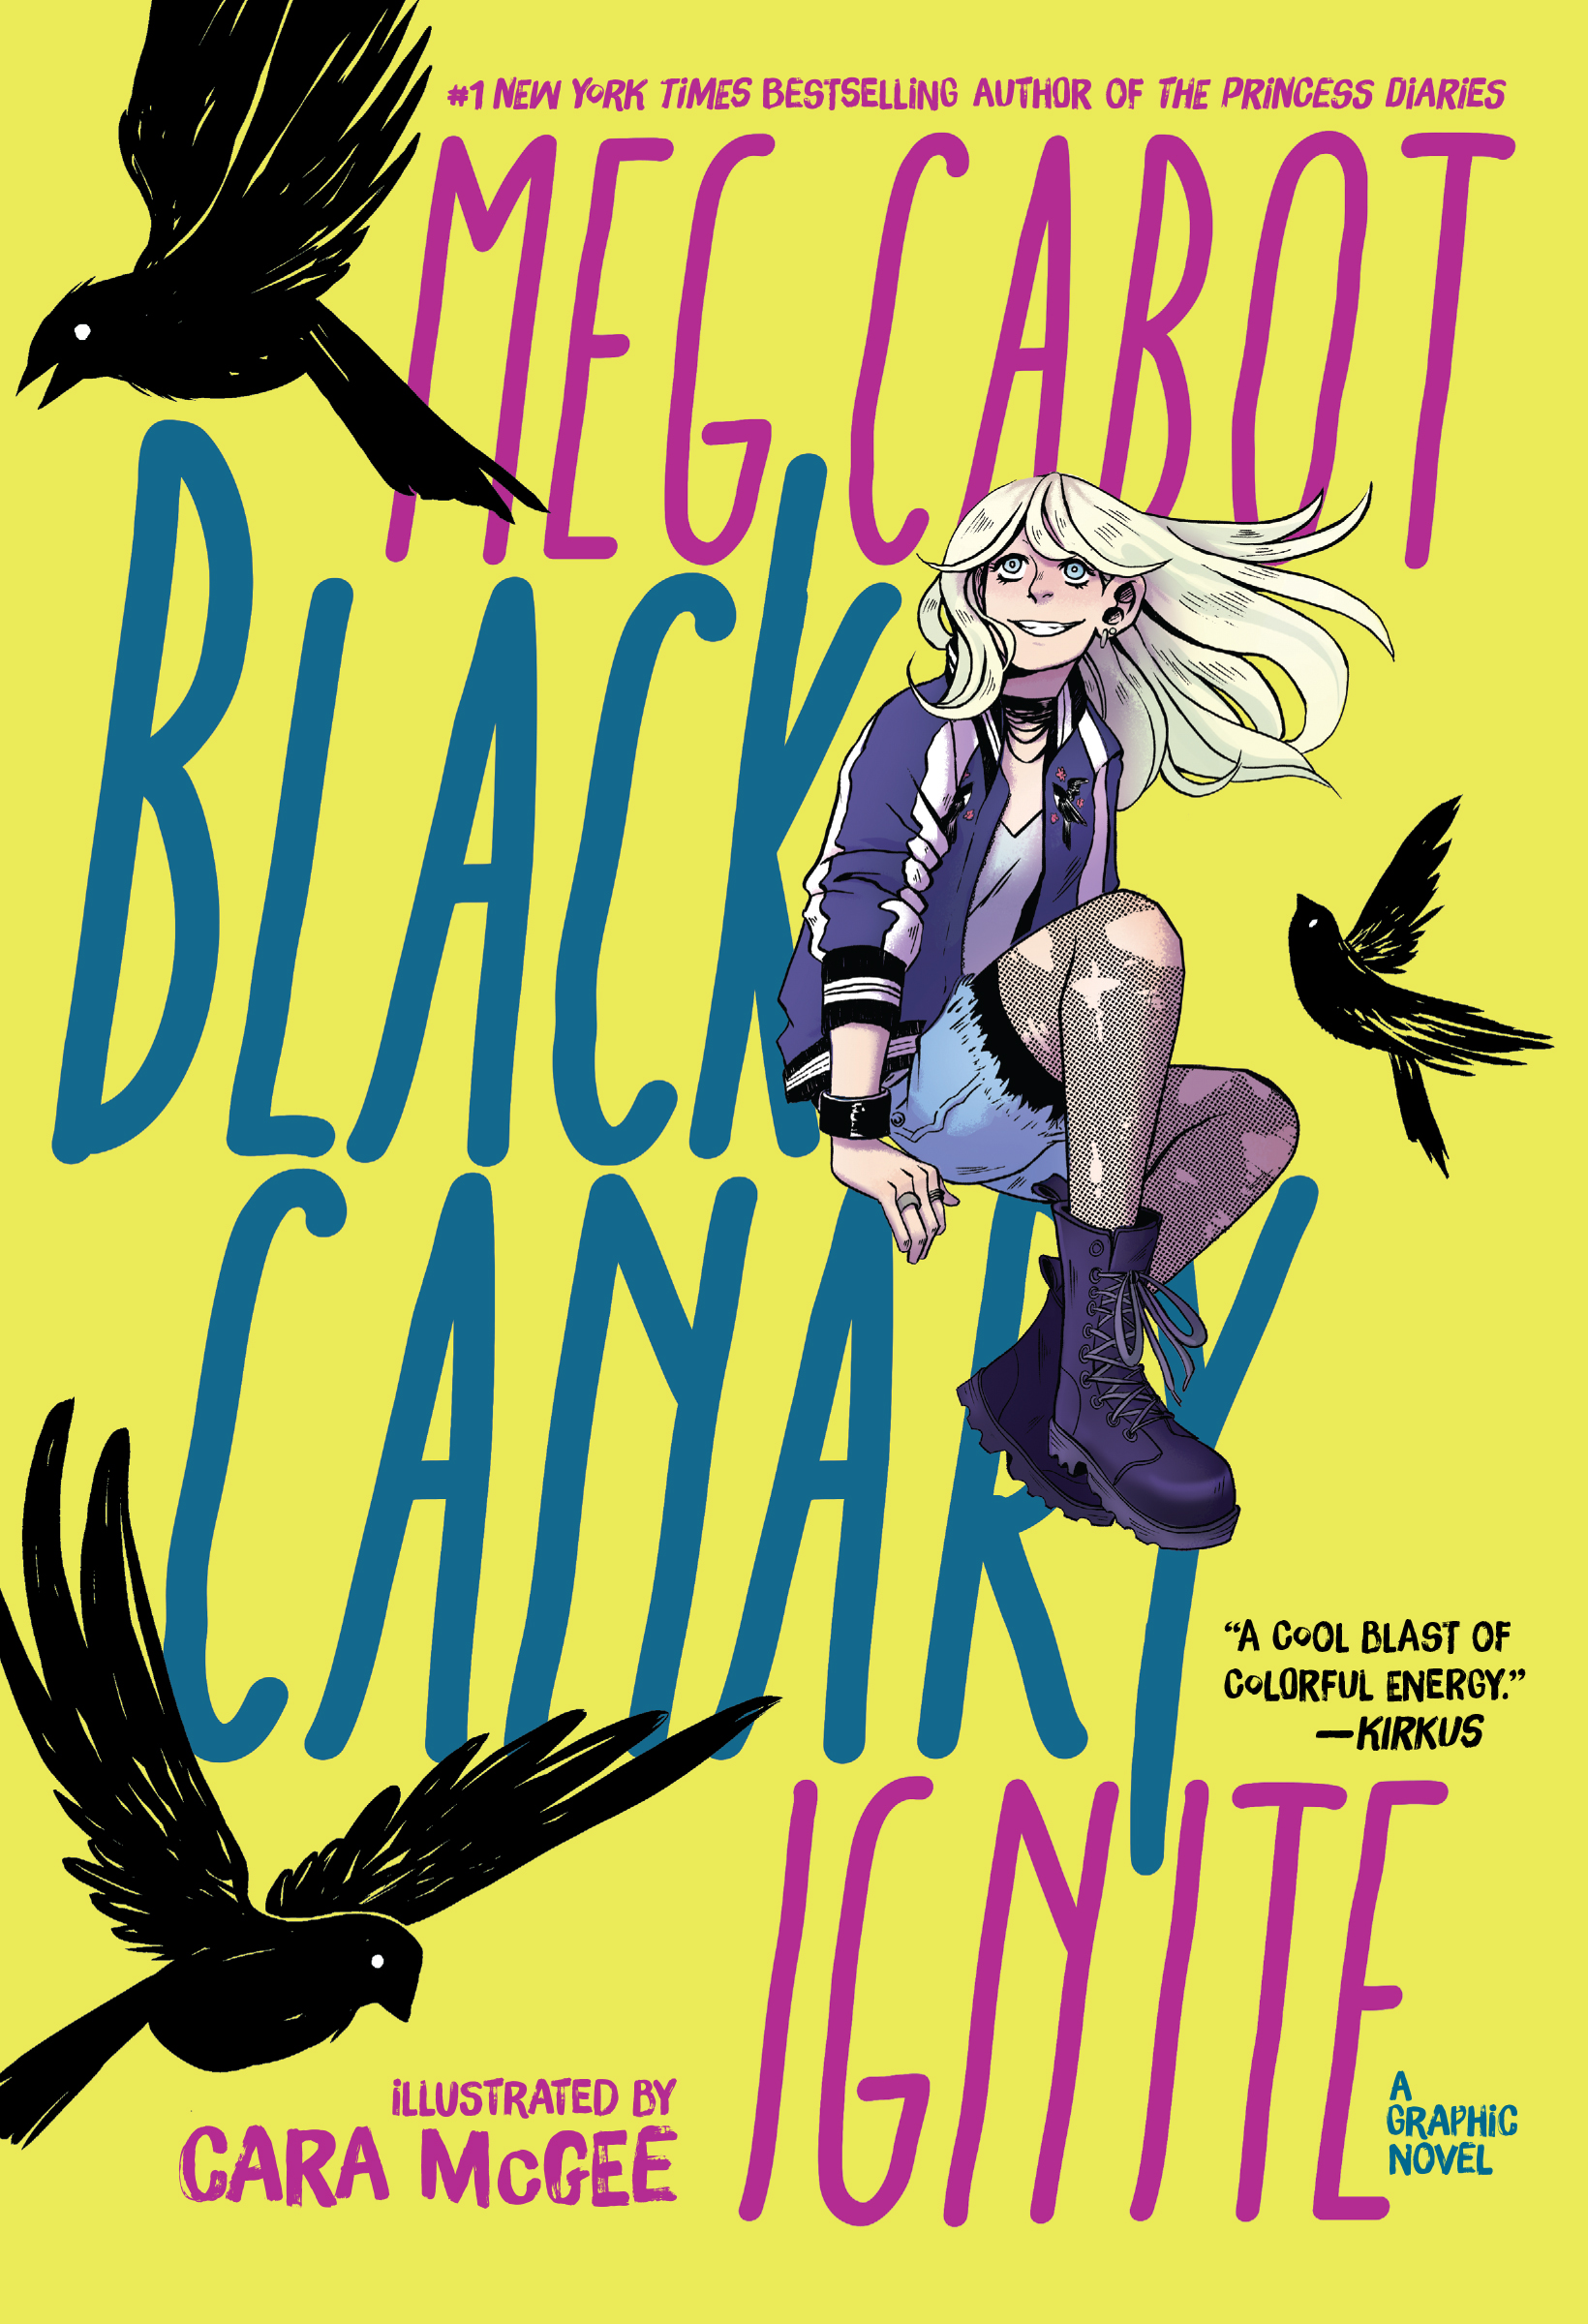 Middle Grade Graphic Novel Black Canary Ignite by Meg Cabot